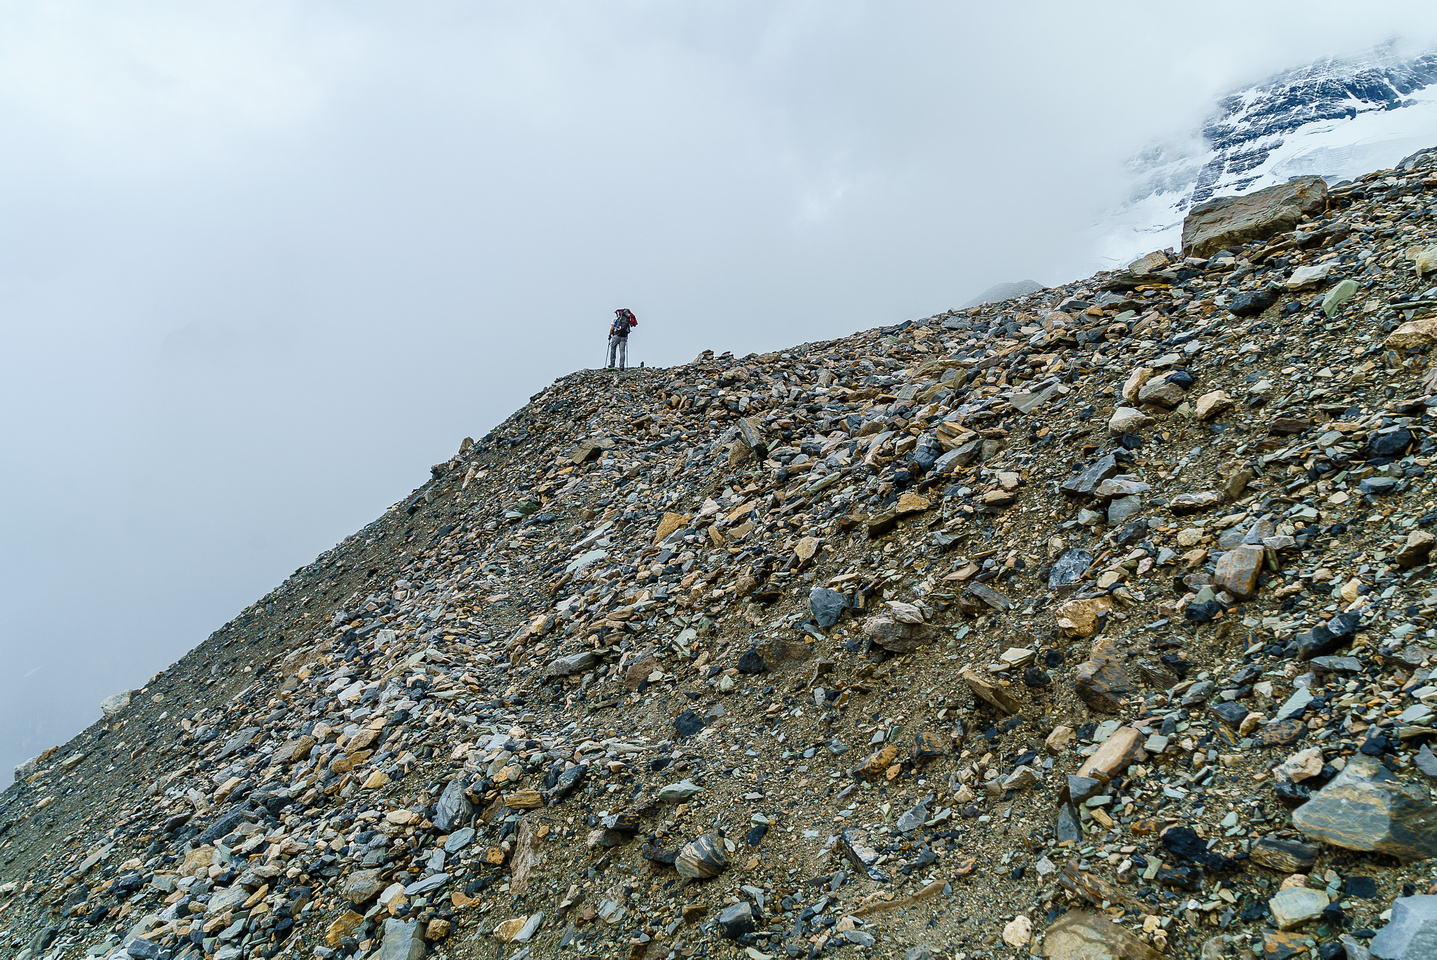 Ben on the moraines below the glacier. The trail through here is fairly obvious and marked with many large cairns.